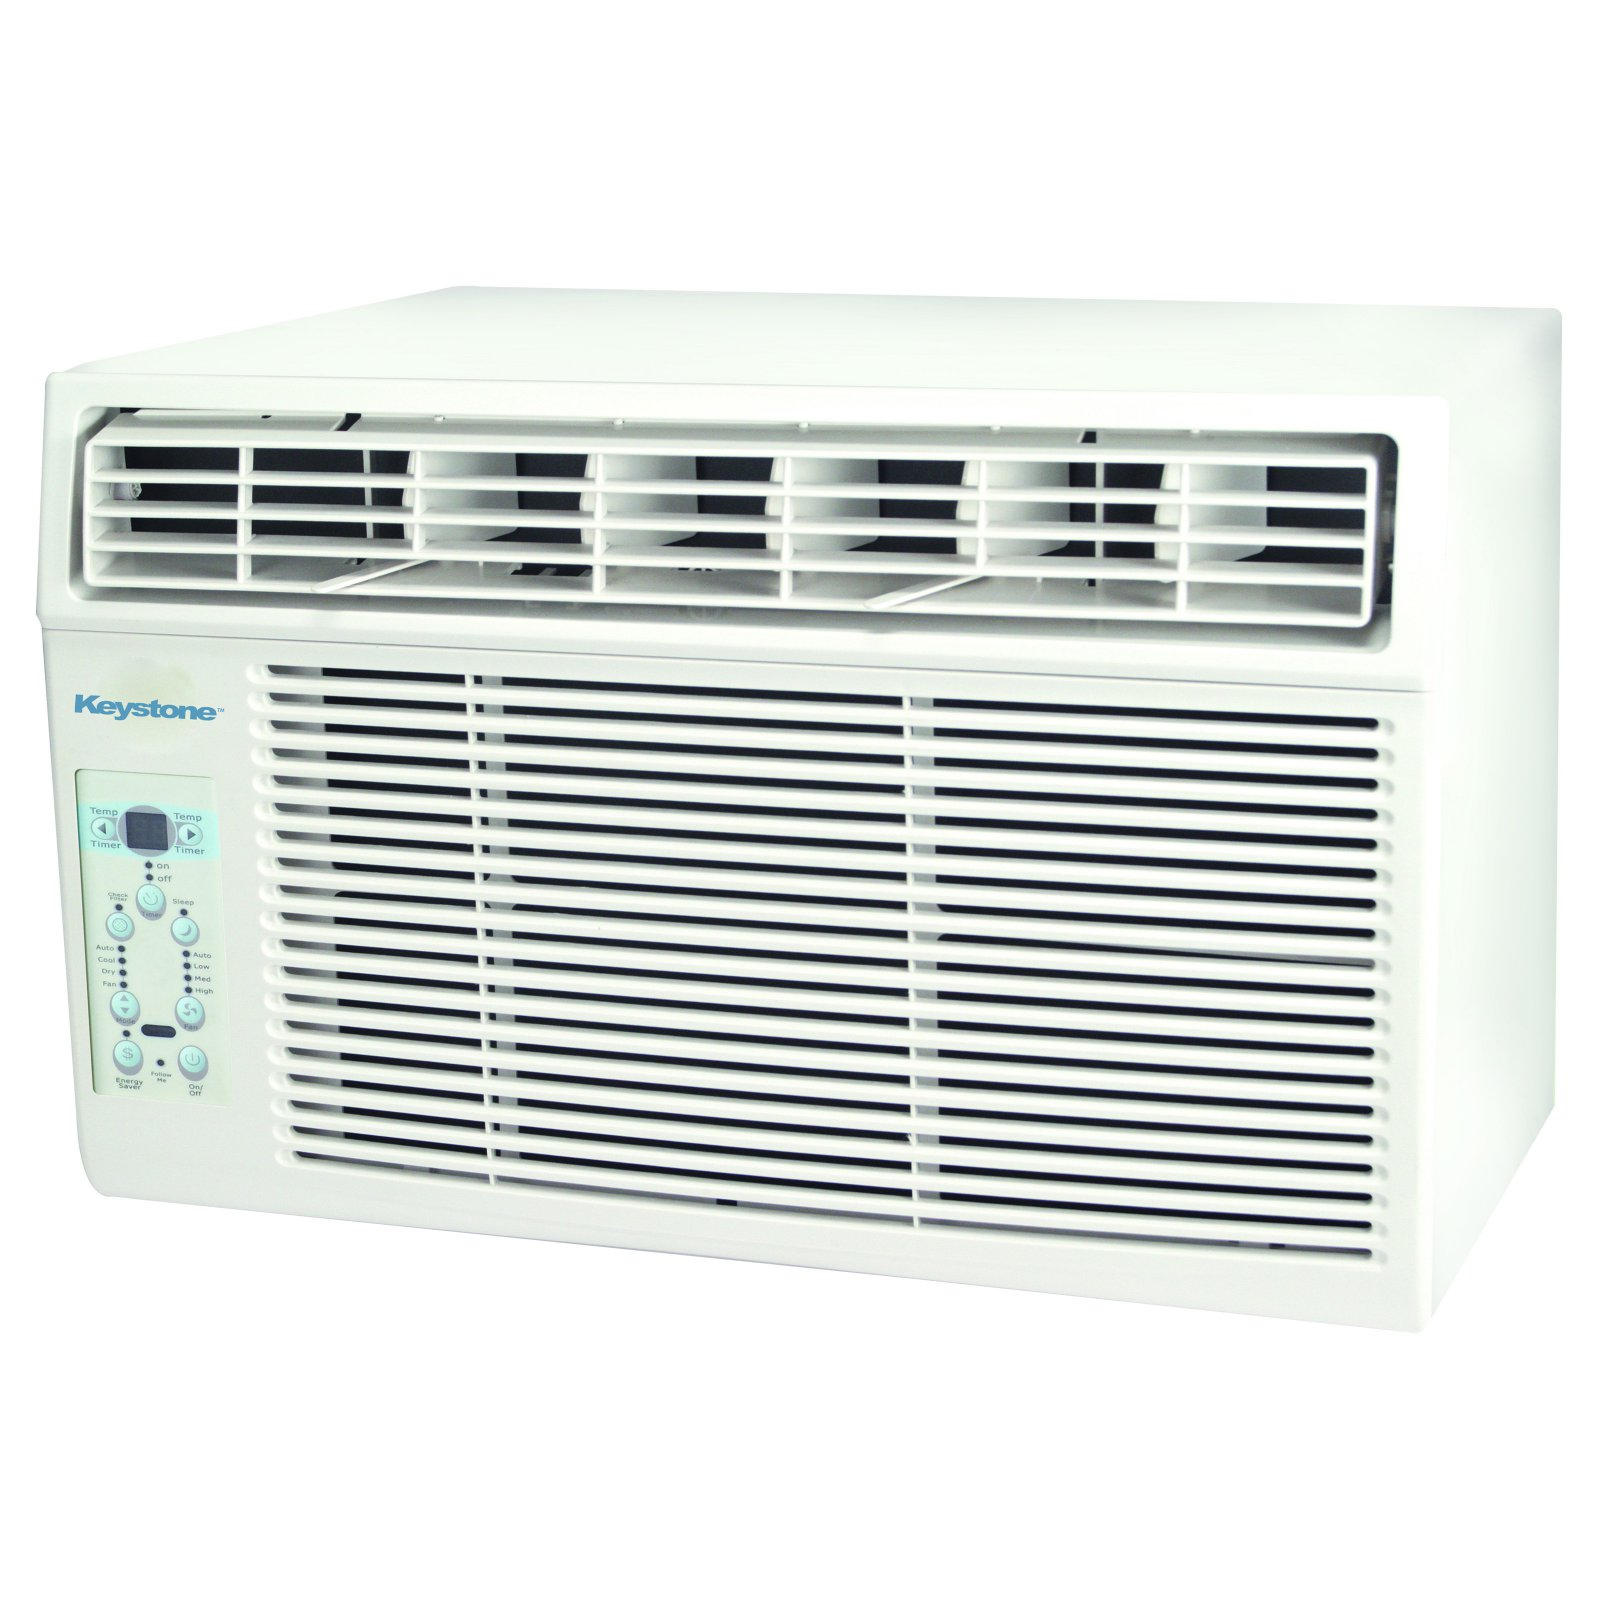 "Keystone 8,000 BTU 115V Window-Mounted Air Conditioner with ""Follow Me"" LCD Remote Control"